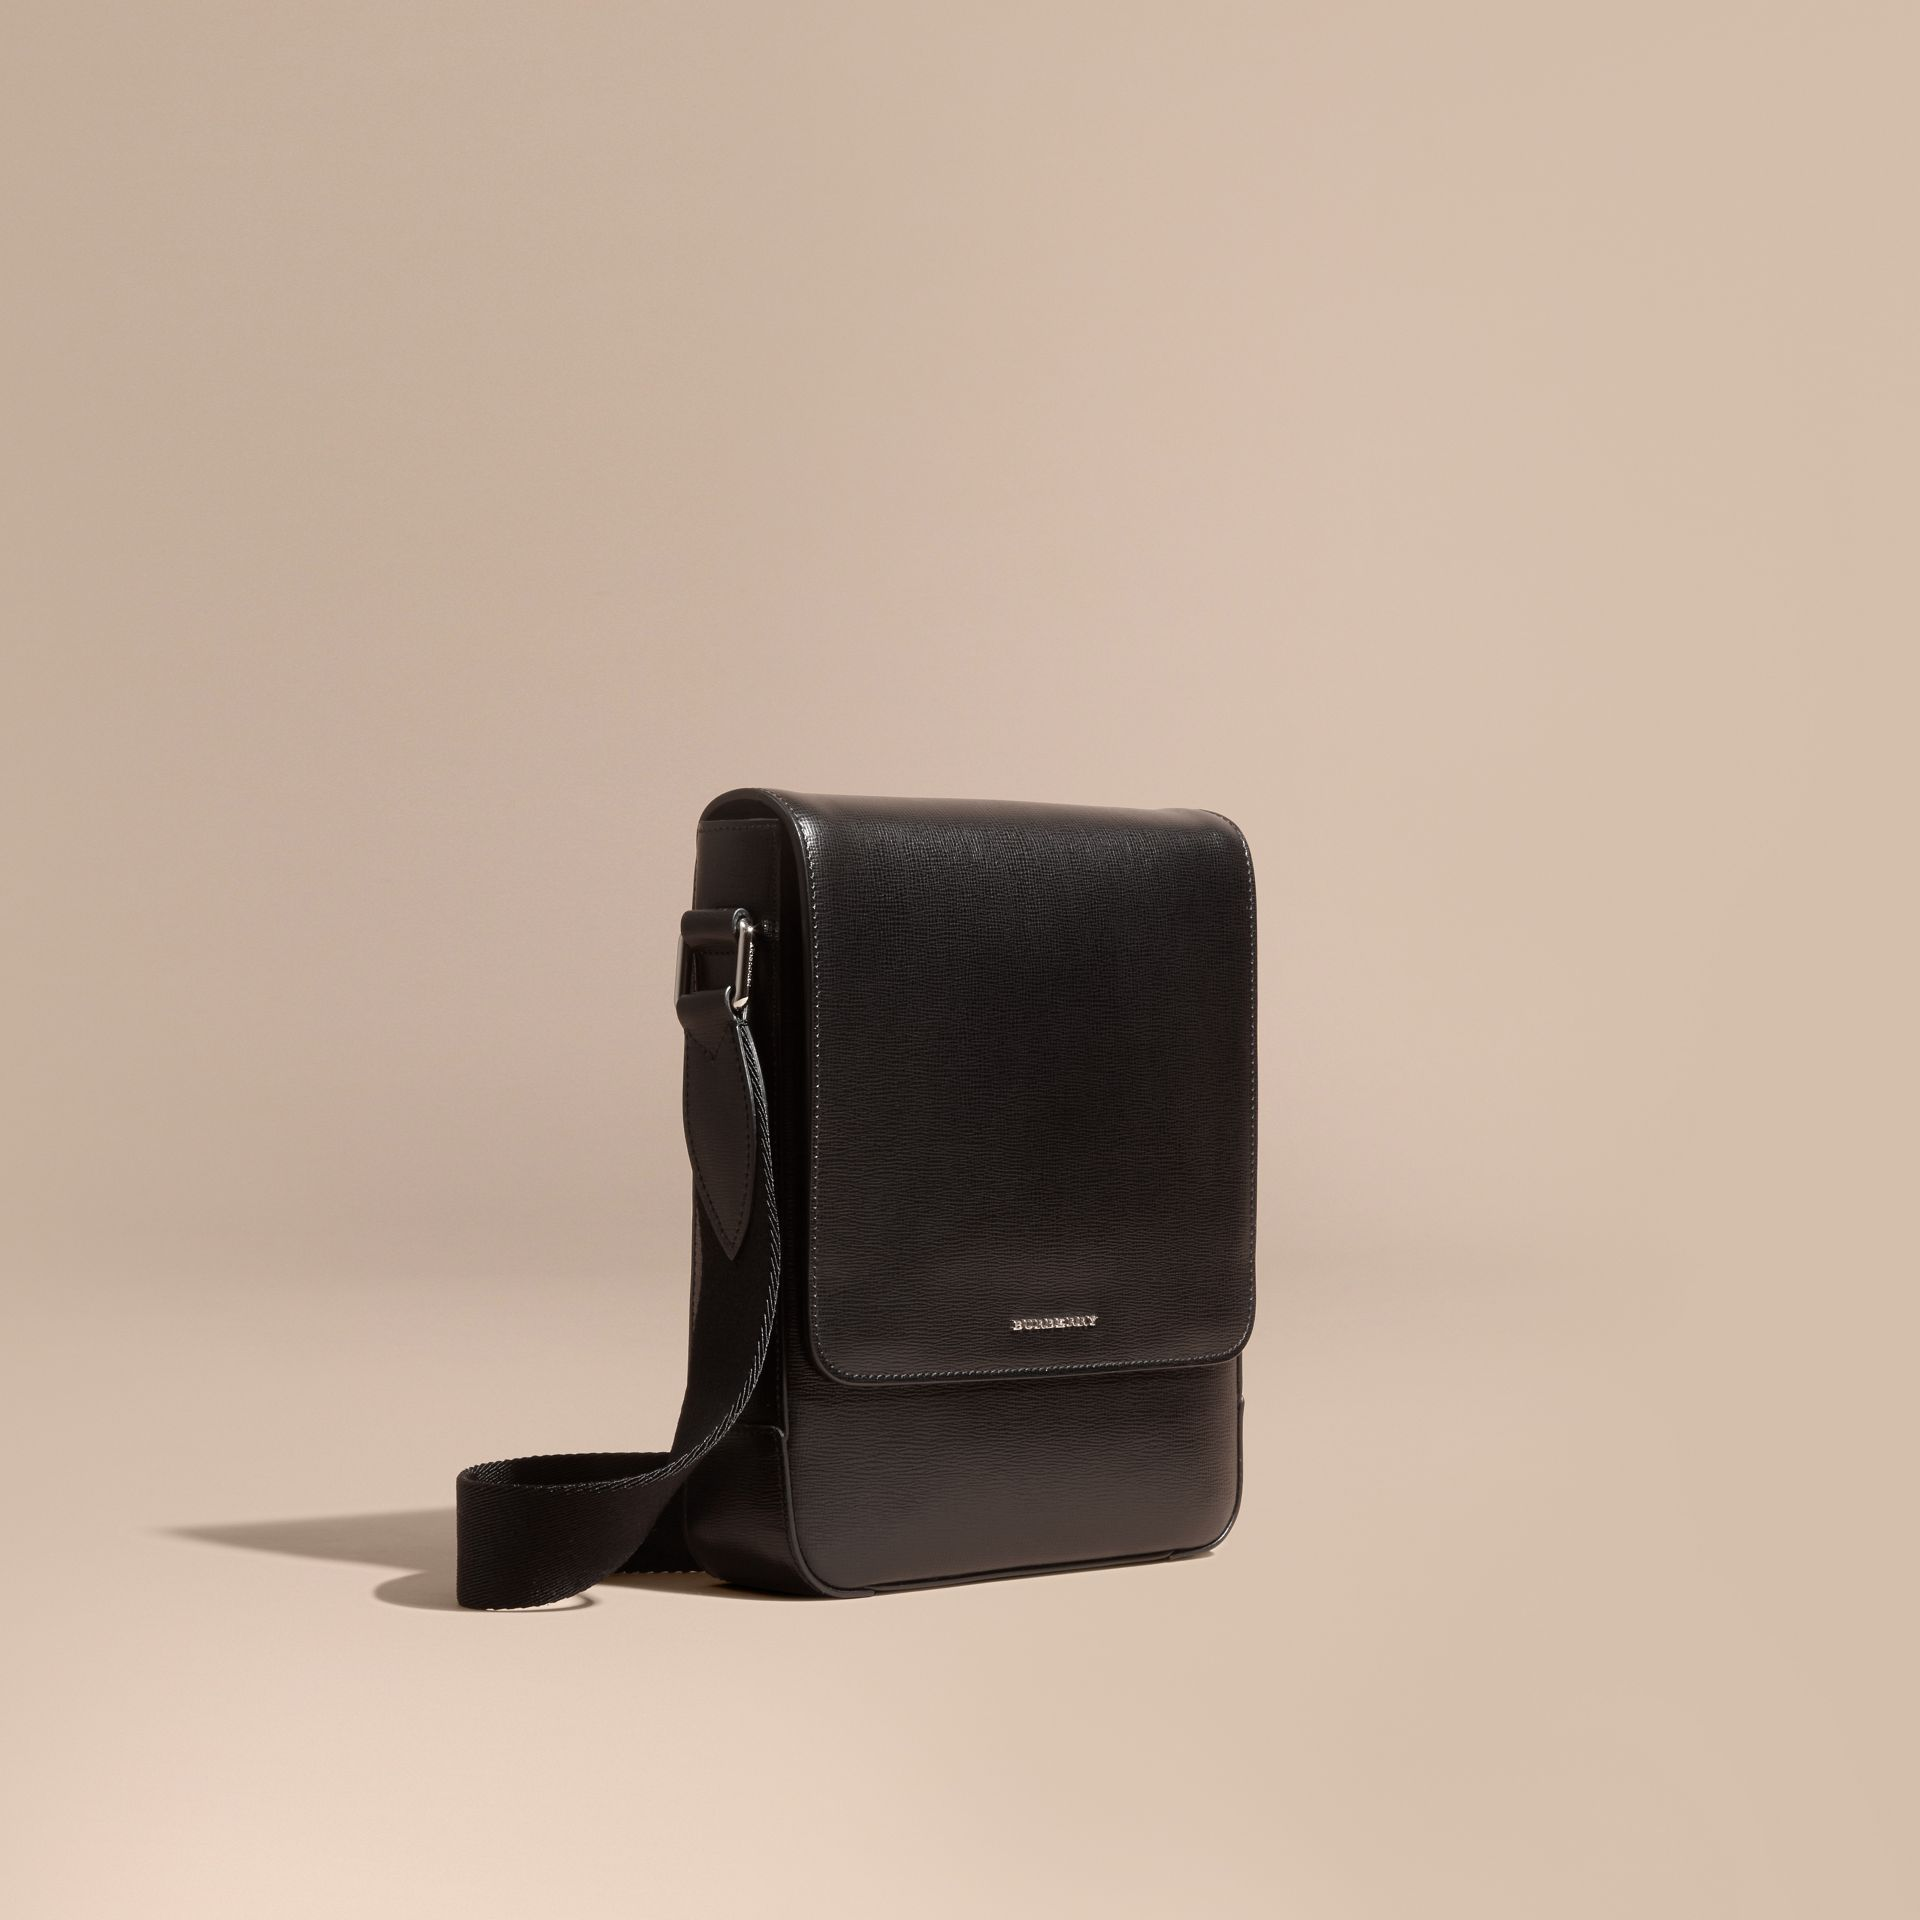 Black London Leather Crossbody Bag Black - gallery image 1